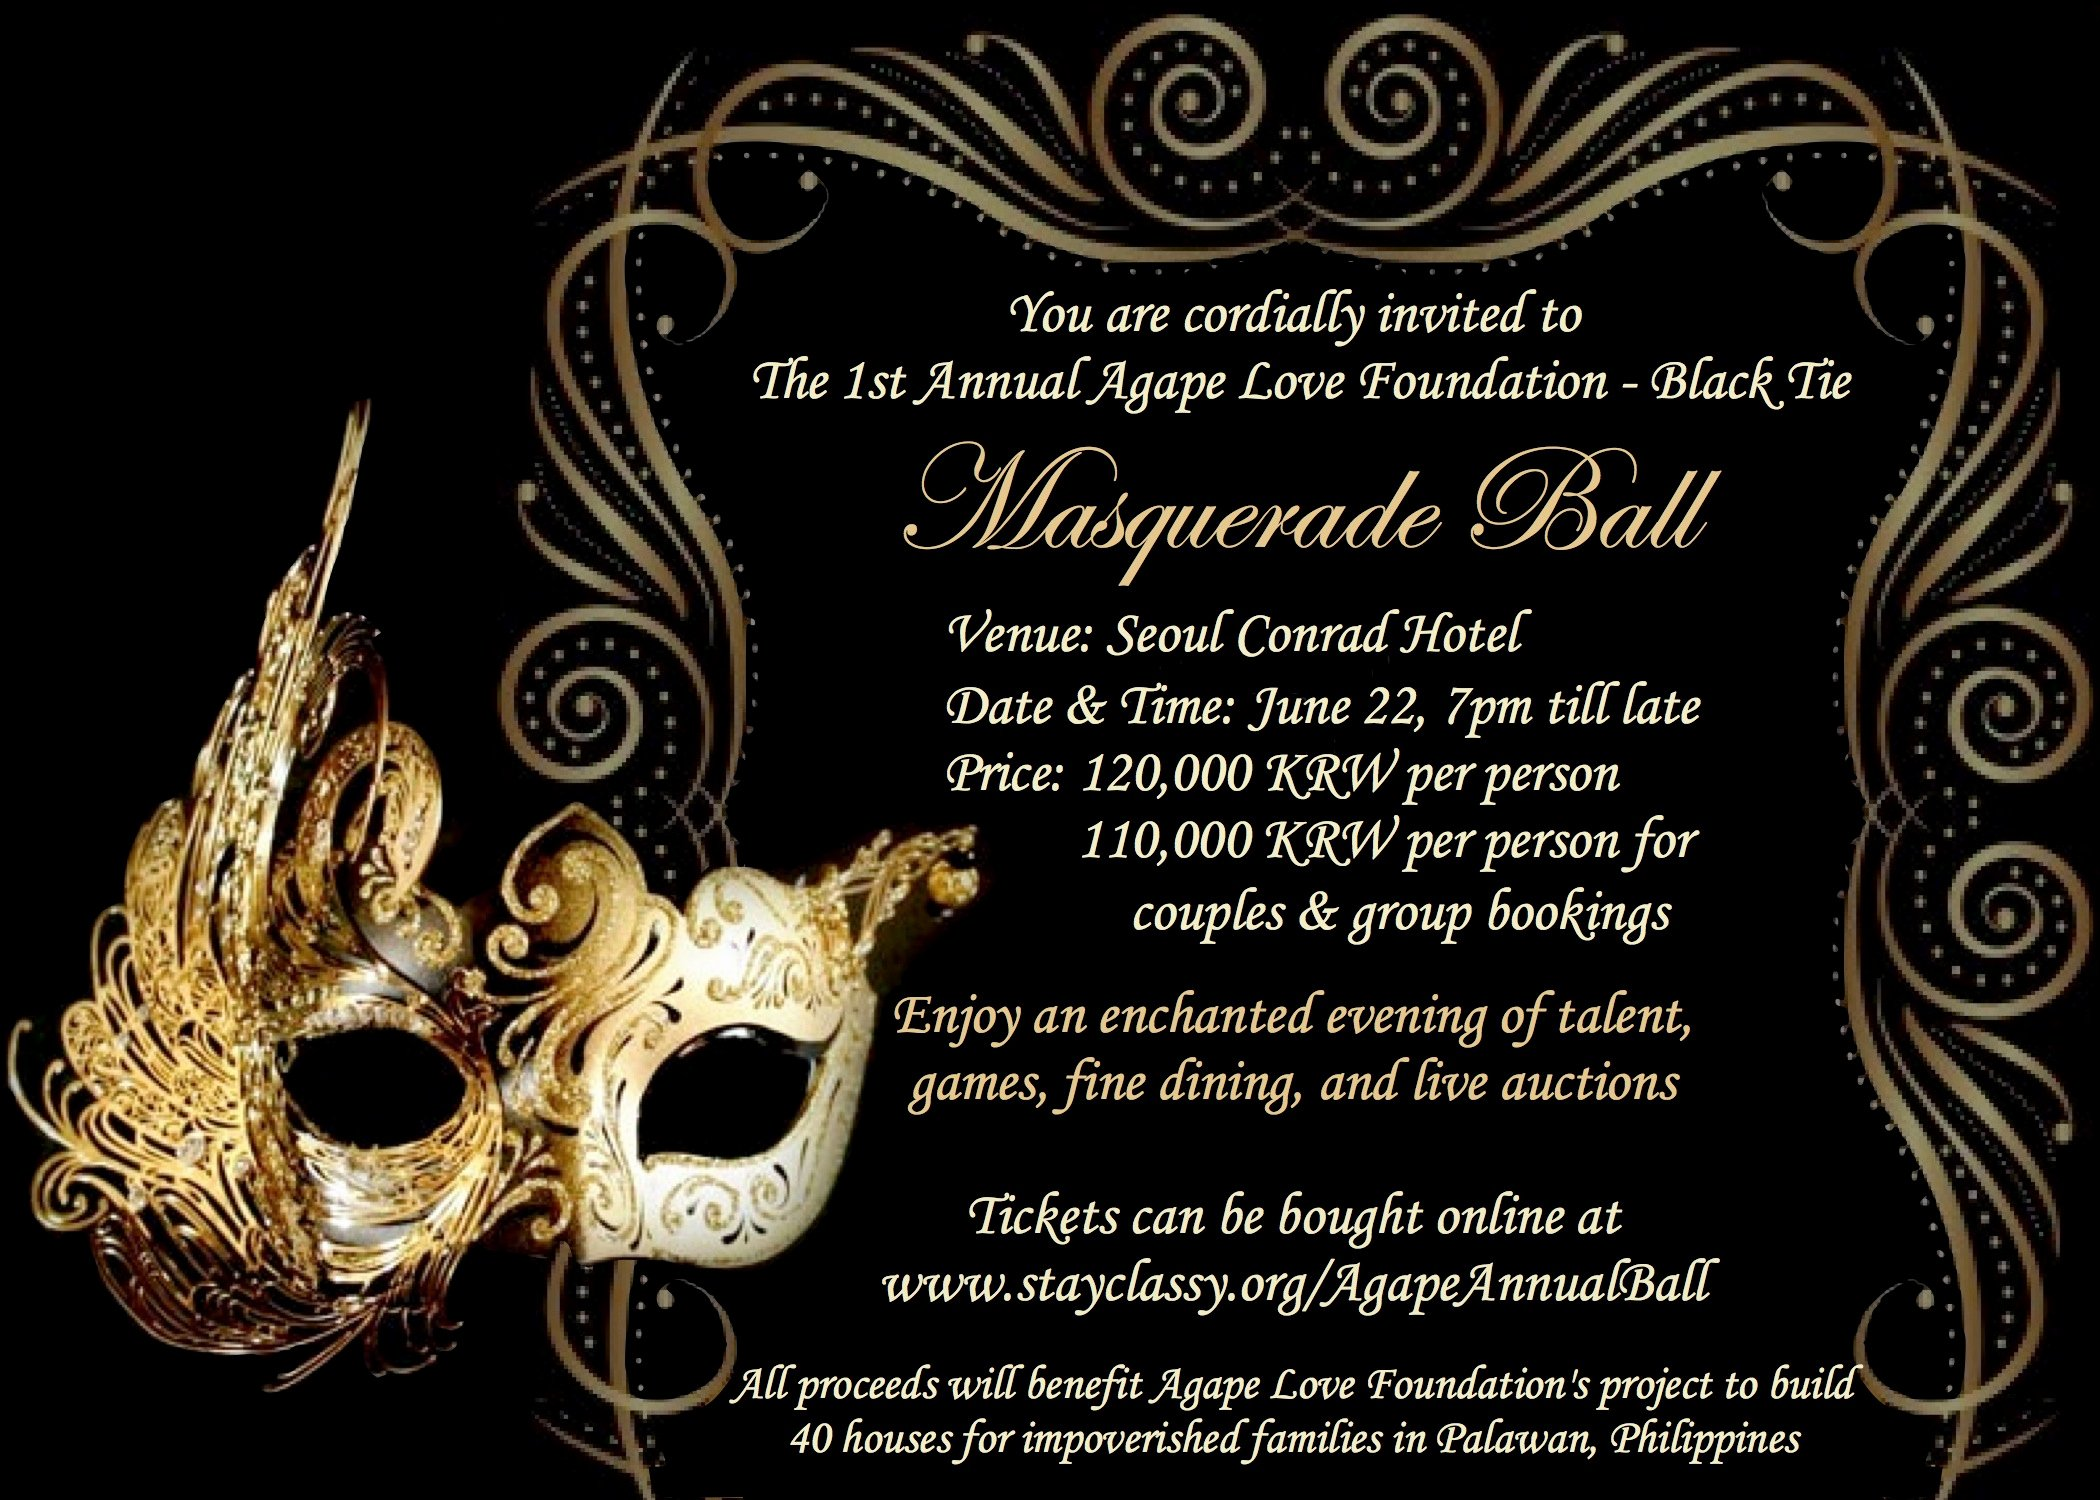 Masquerade Party Invitations Templates Free Awesome Birthday Party Invitations Free Templates